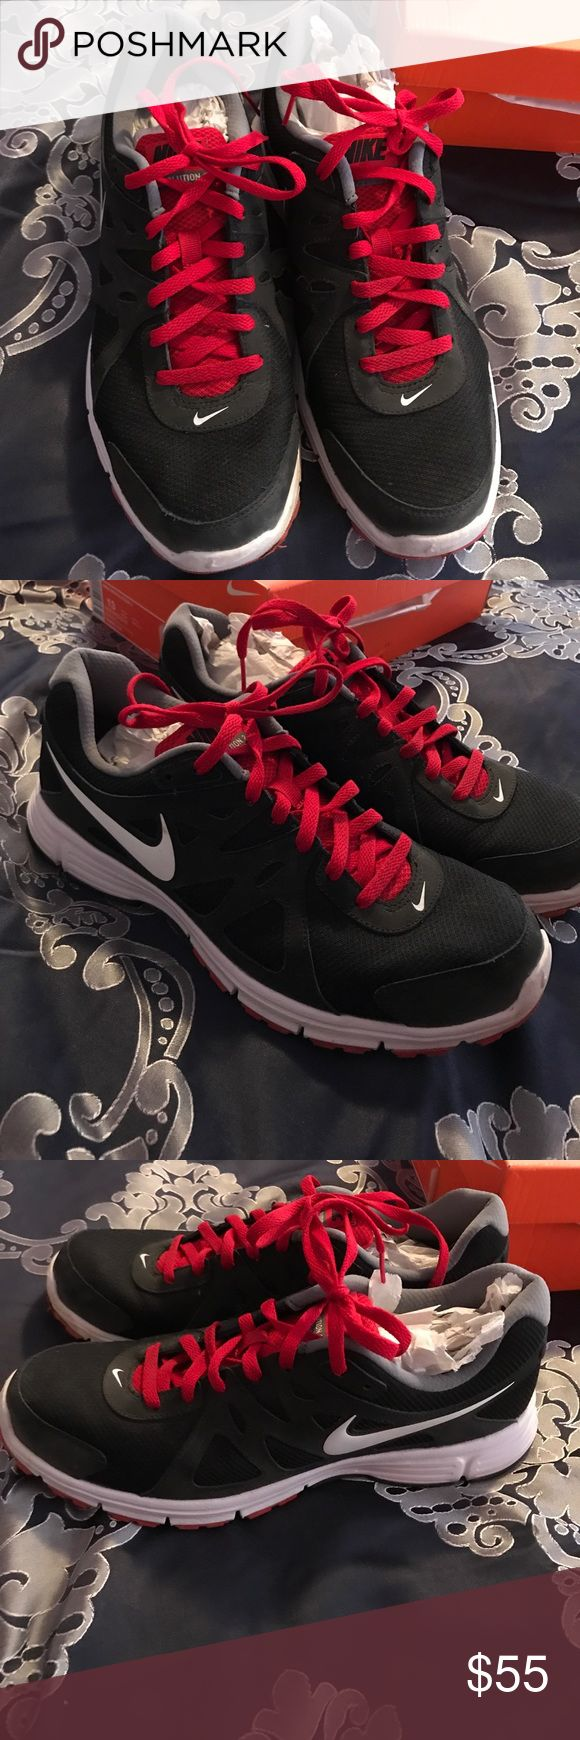 Men's Nike revolution sneakers size 13 Men's Nike revolution size 13 sneakers color of sneakers are black white and varsity red with red laces. Only worn 2 times. Comes in Nike original box Nike Shoes Sneakers